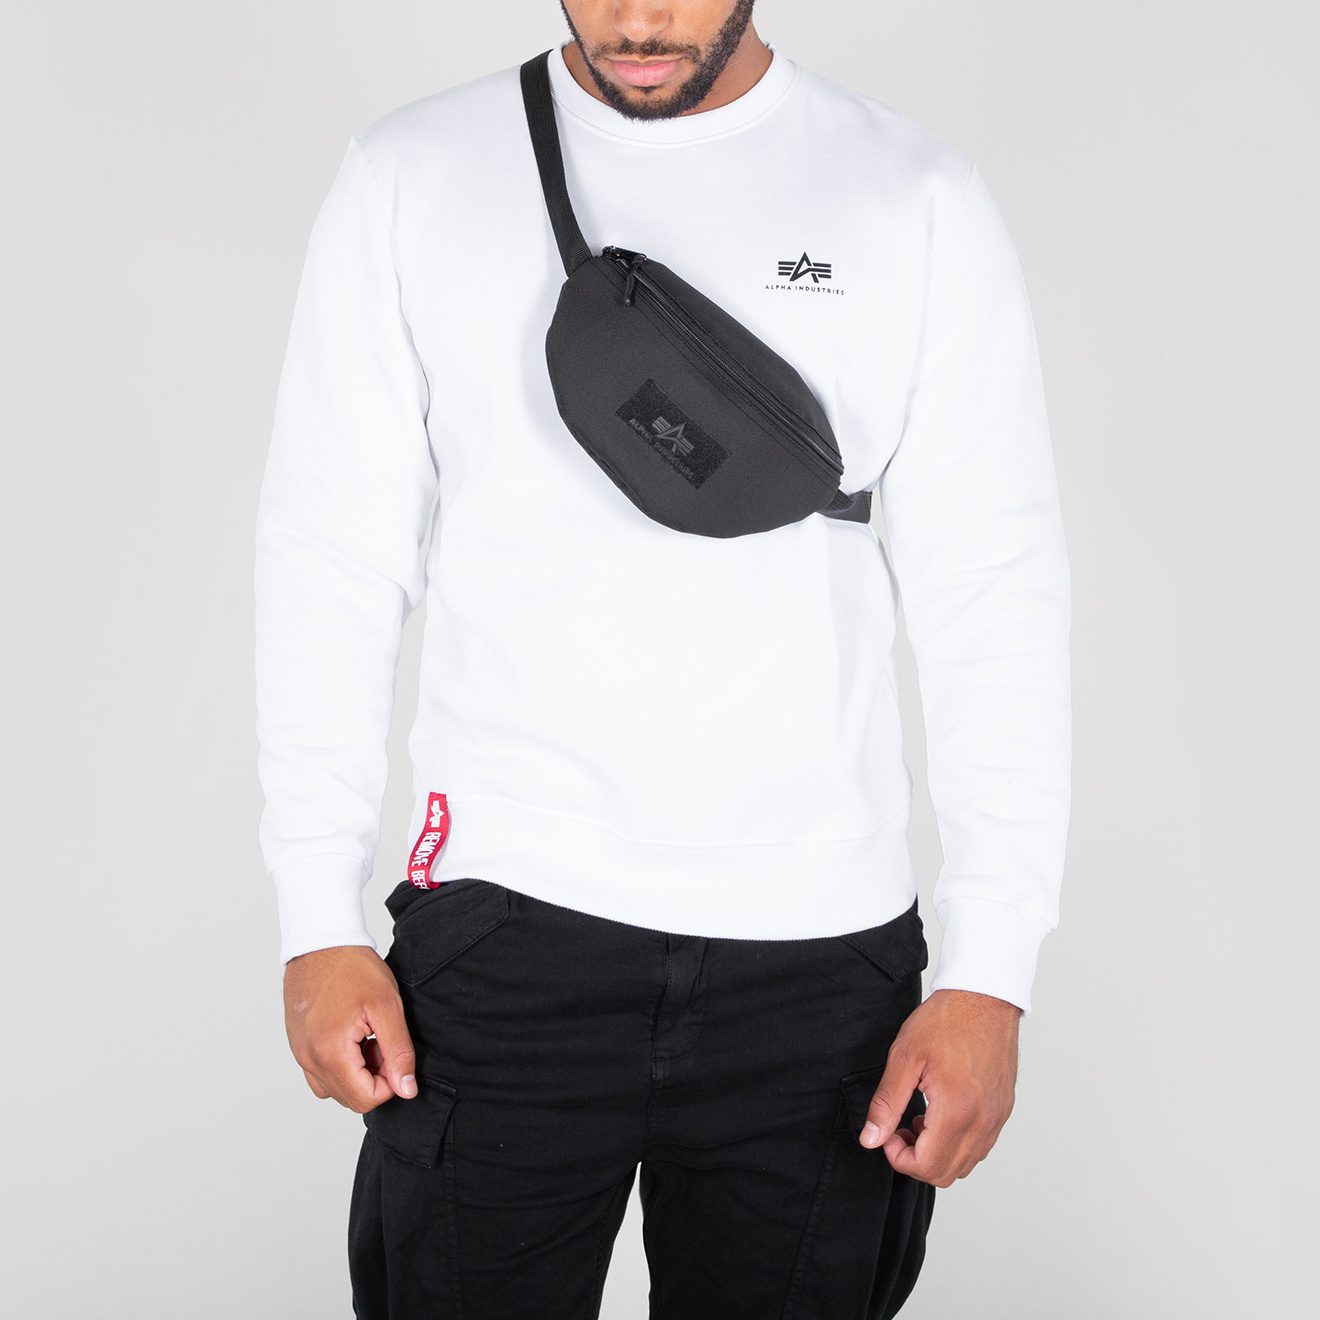 ledvinka Waist Bag VLC black